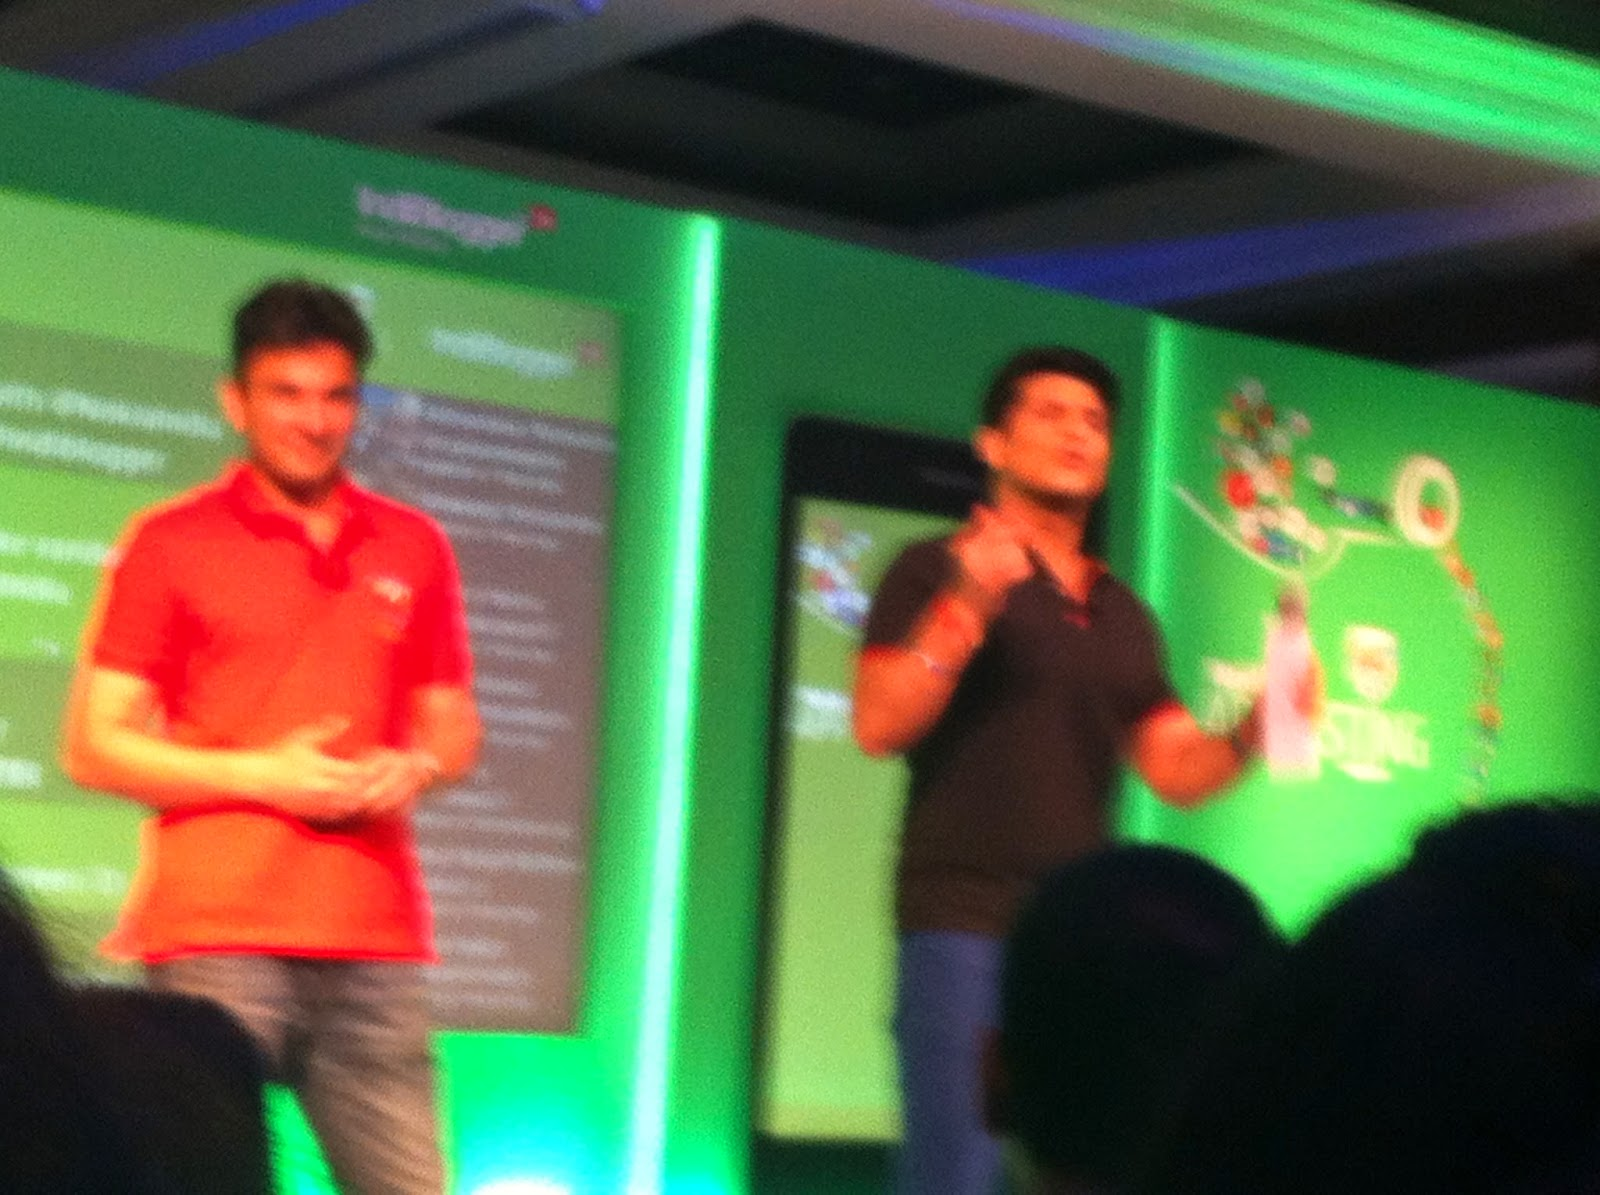 Rajiv Makhani and Vikas Khanna at NokiaXL meet